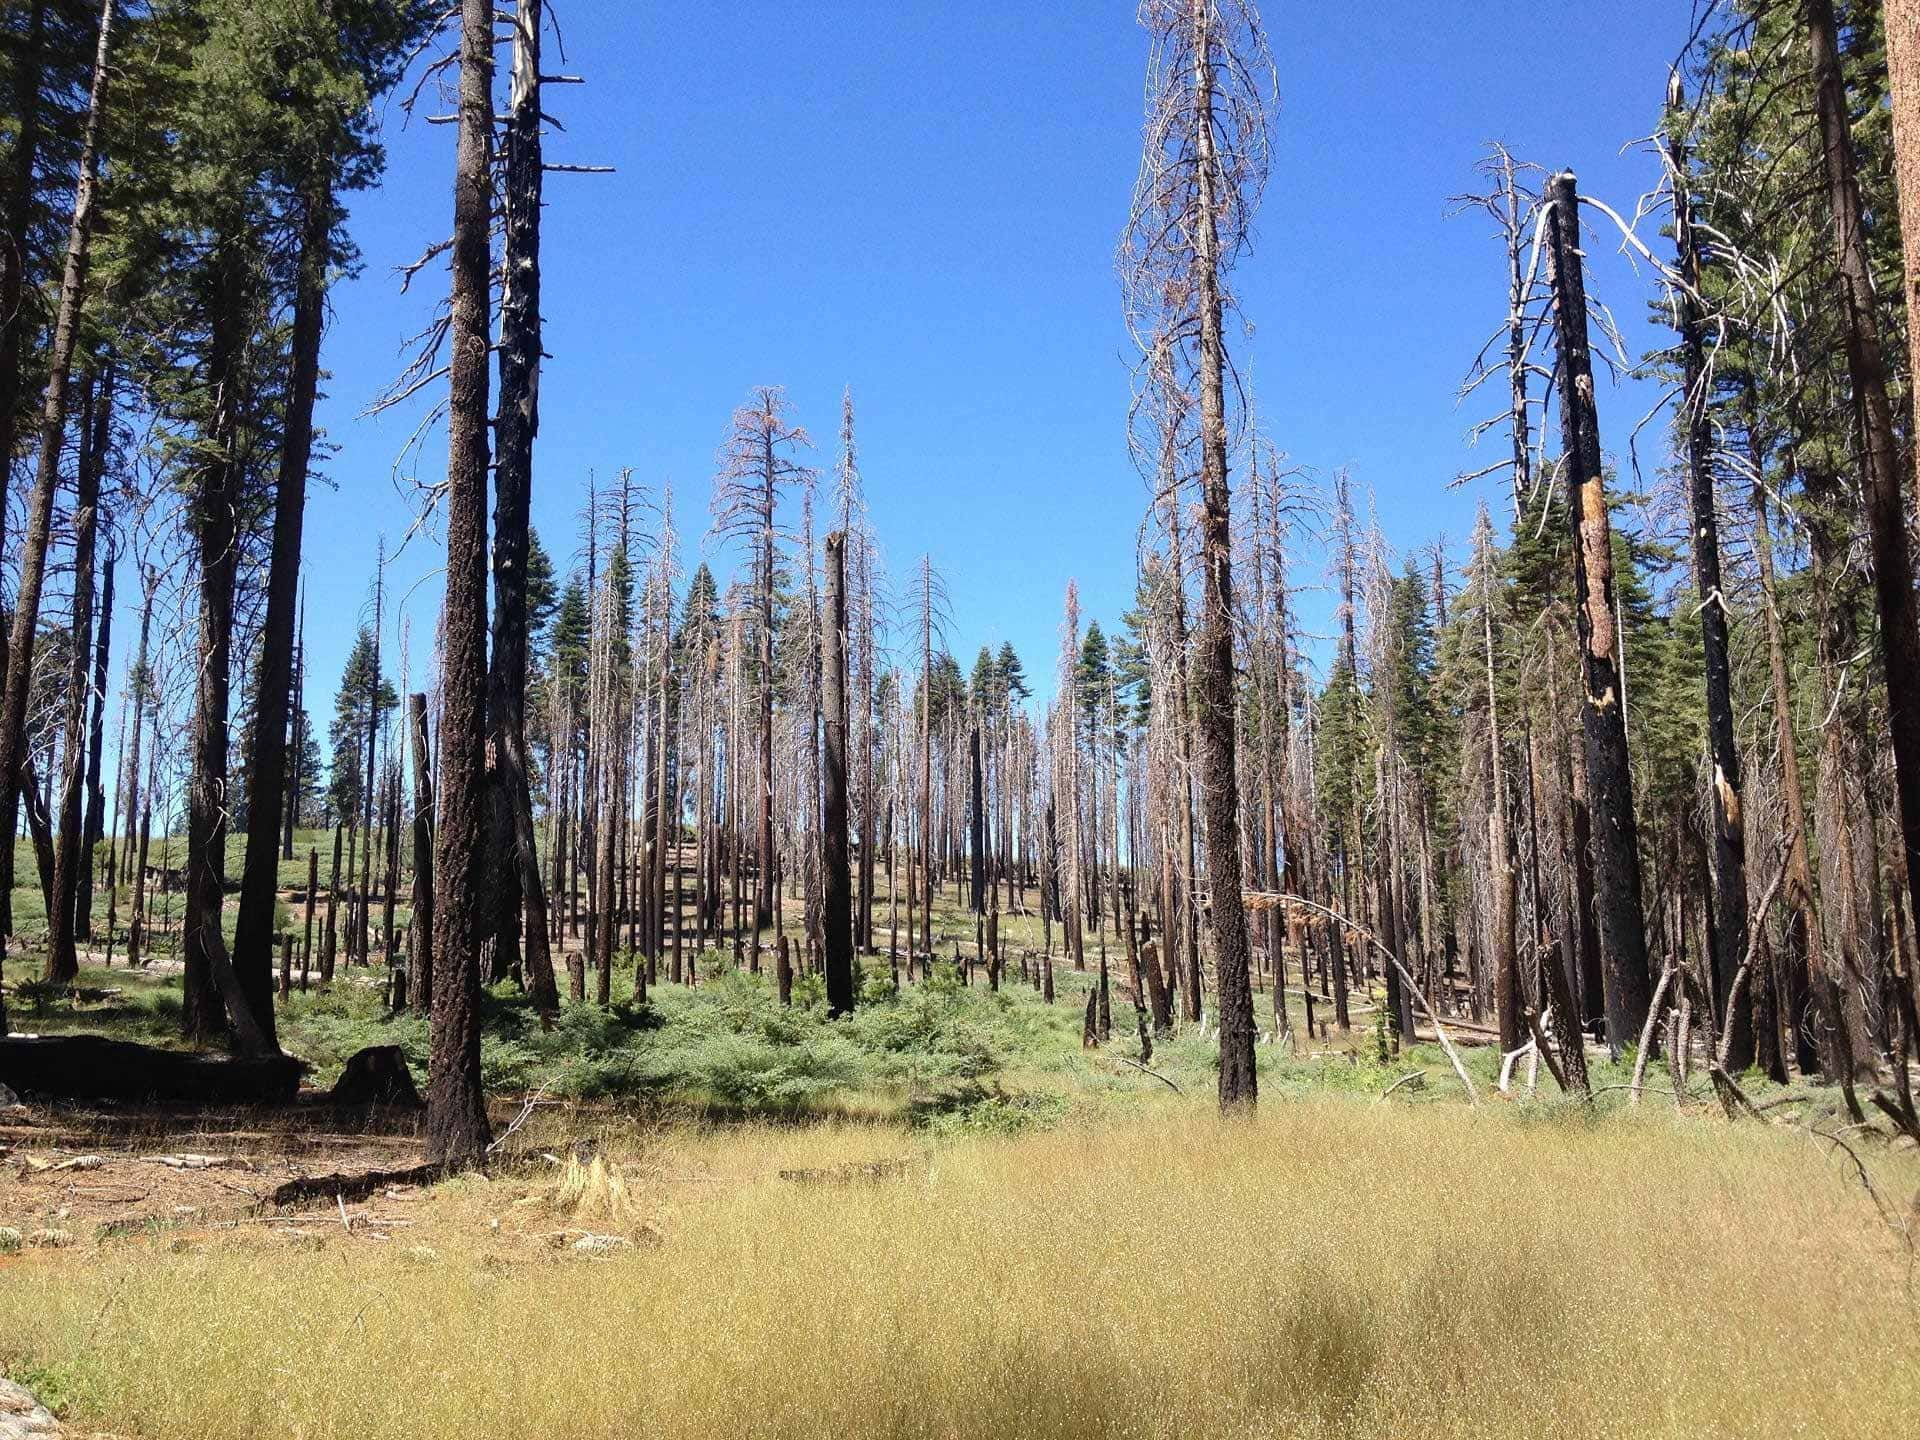 A forest with a majority of dead trees after a wildfire